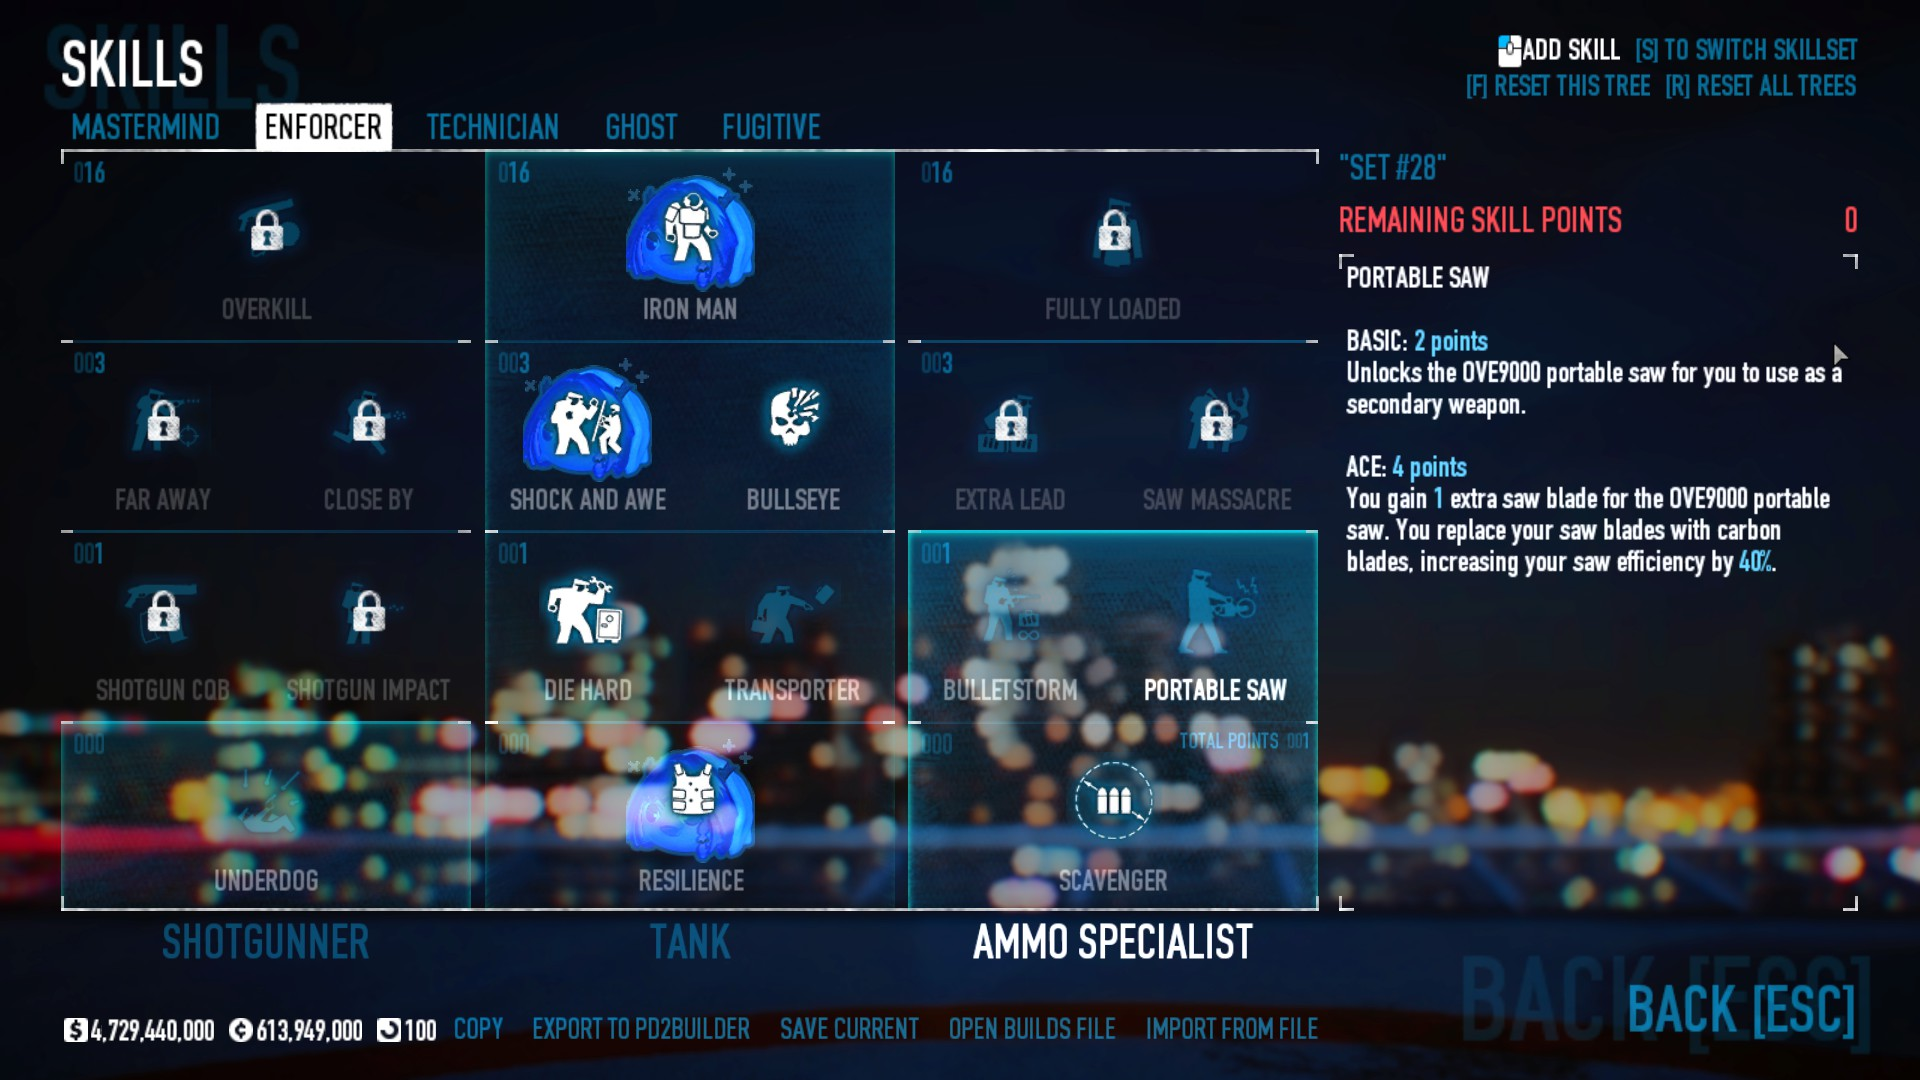 PAYDAY 2 - DSOD No DLC Build + Weapons Attachments & Class - Enforcer Skills - 9622B7D